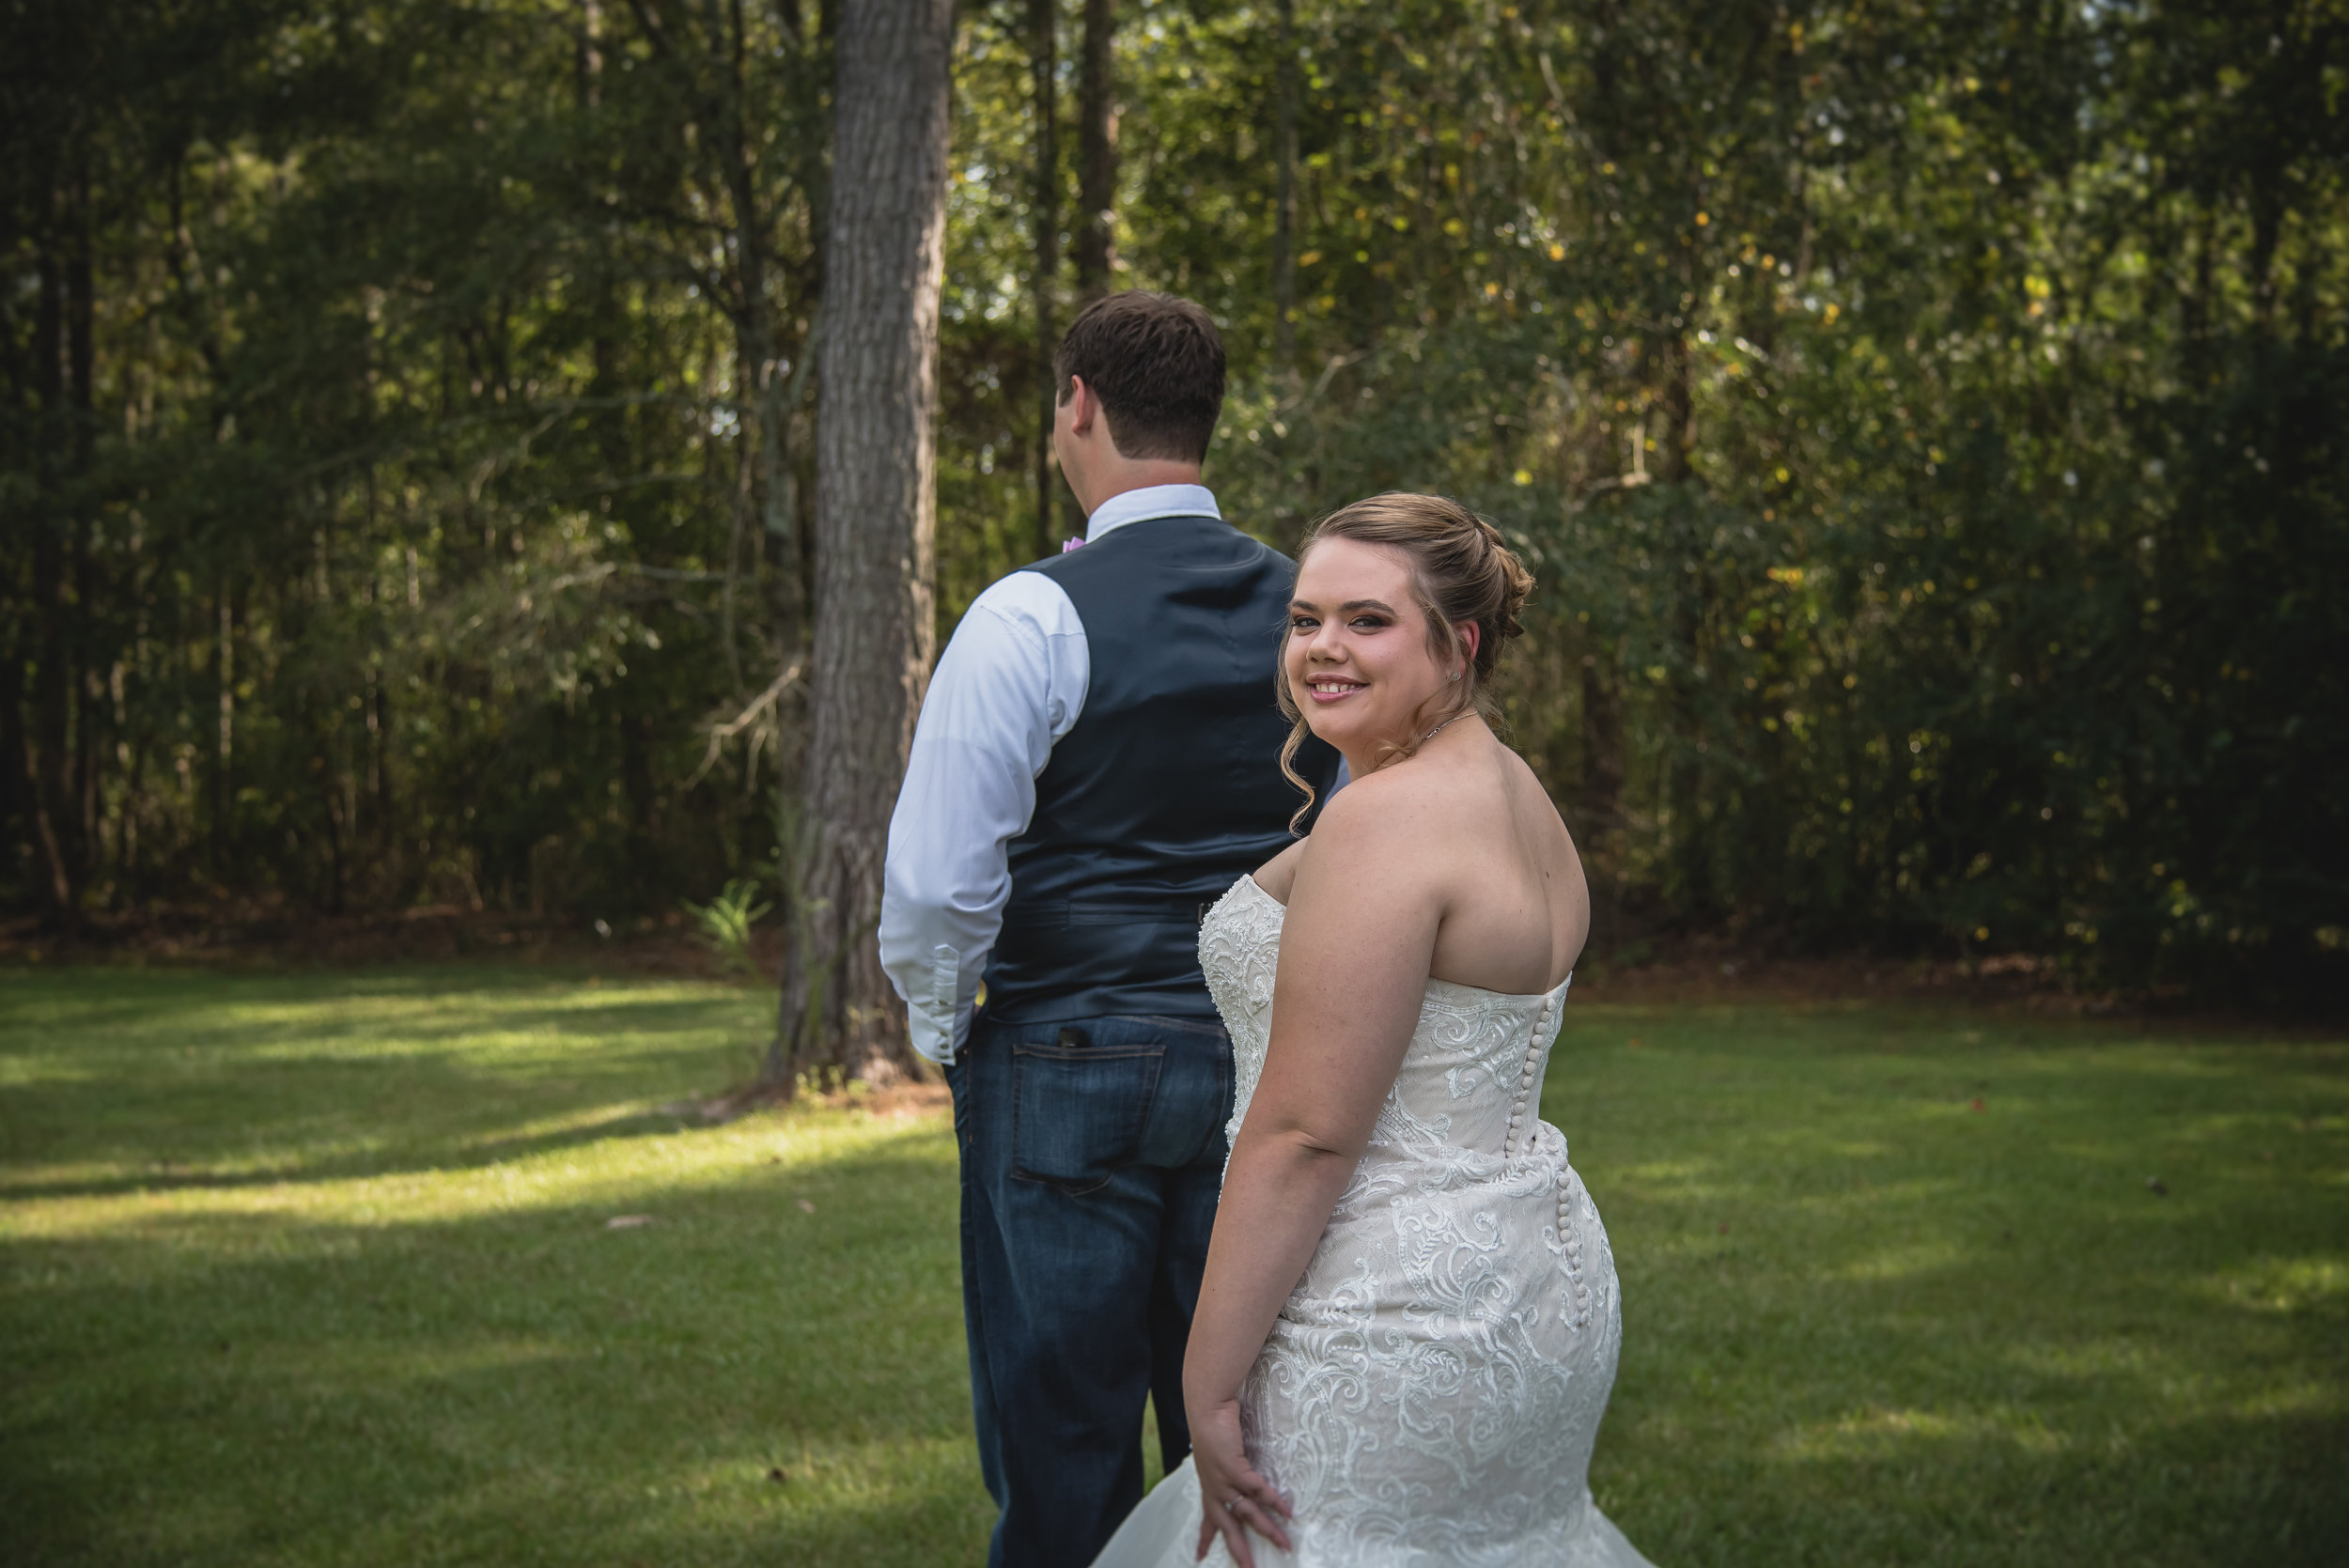 Anna + Dustin: Adorable Firefighter Wedding at T&S Farm | Palmetto State Weddings